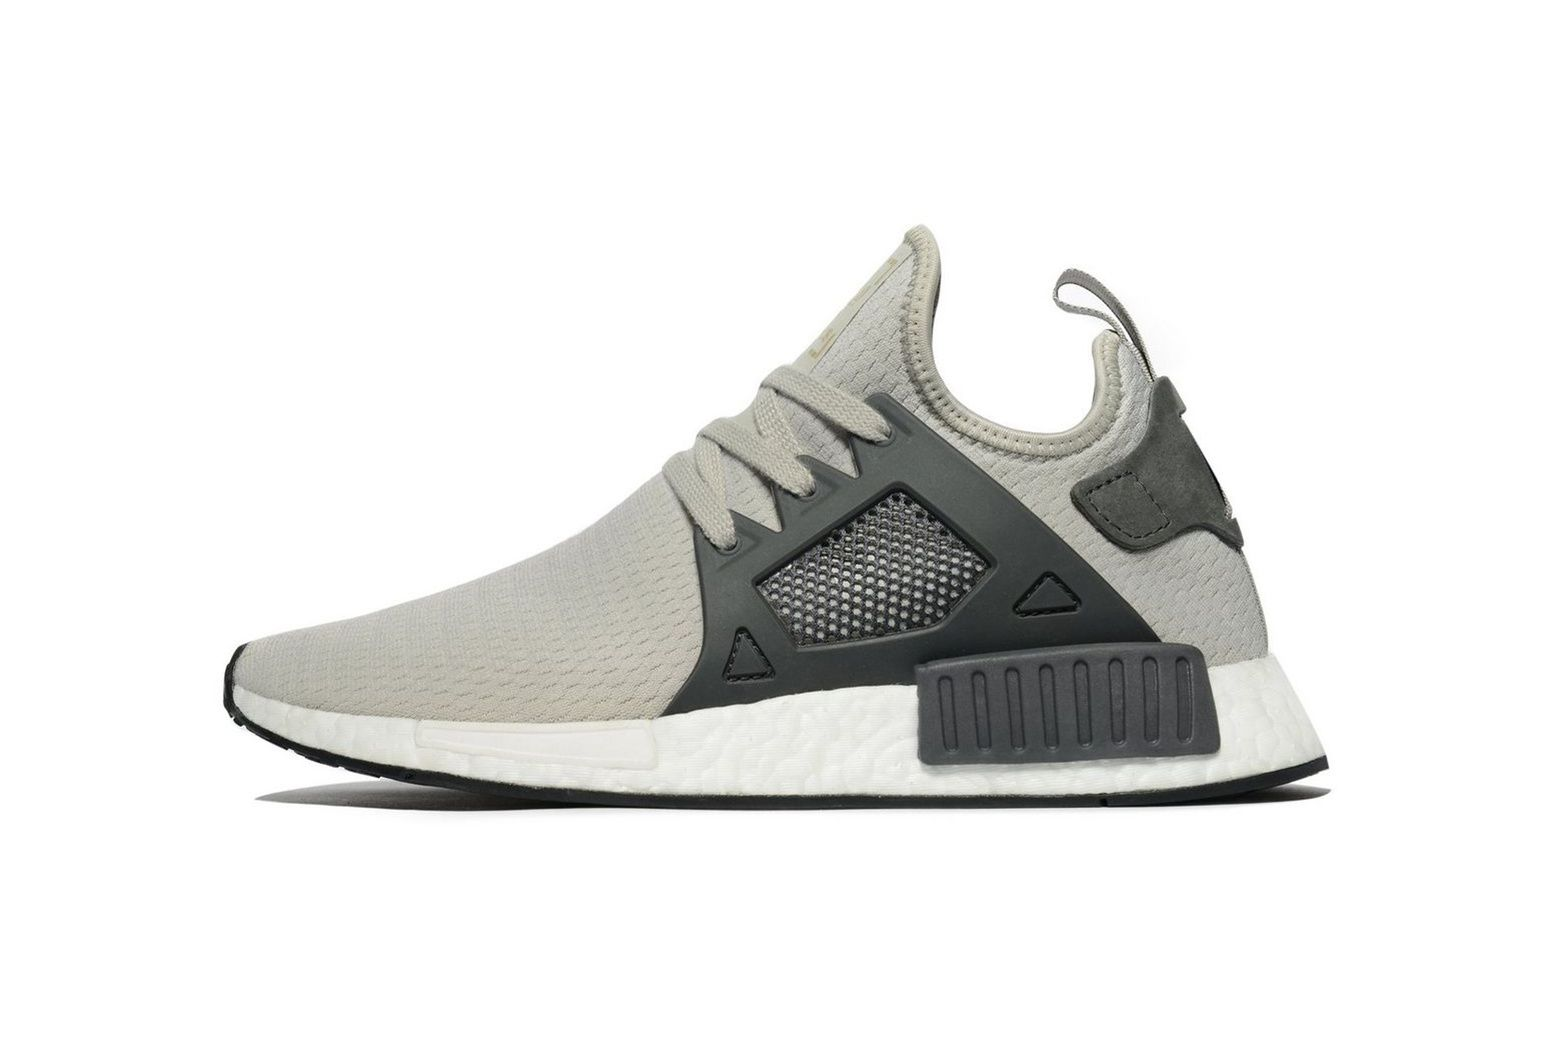 Adidas NMD XR1 JD Sports Exclusive